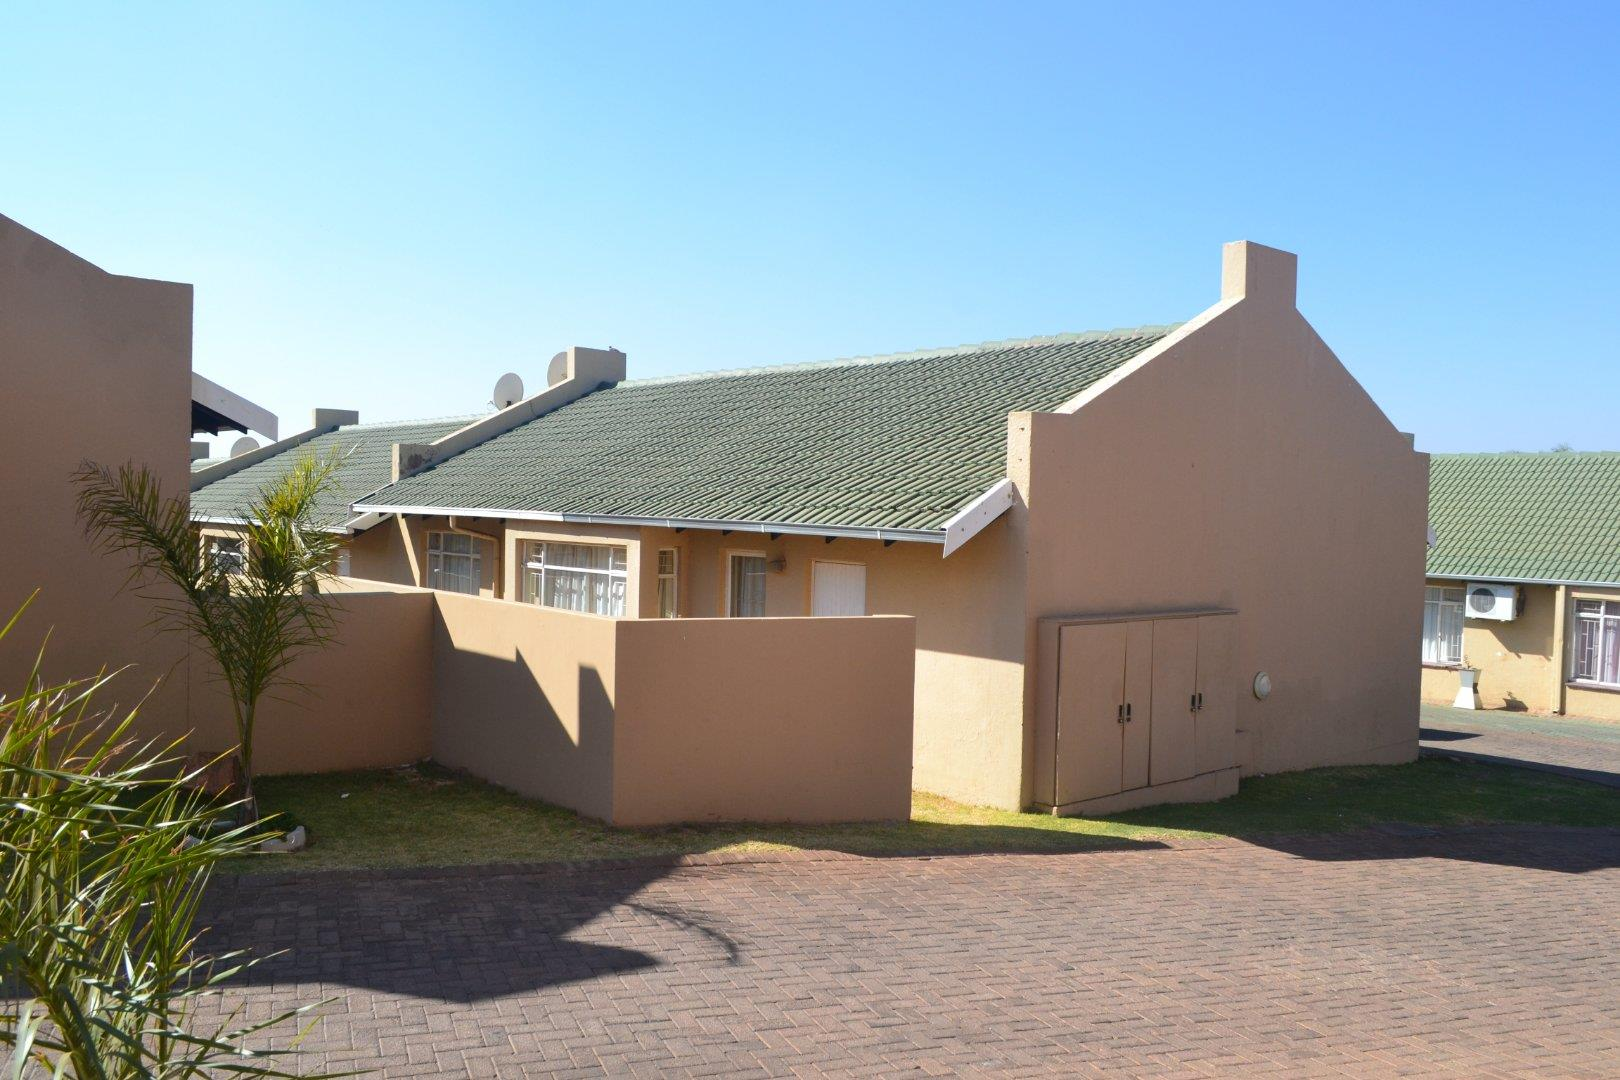 2 Bedroom Apartment for Sale in Witpoortjie, Roodepoort - Gauteng